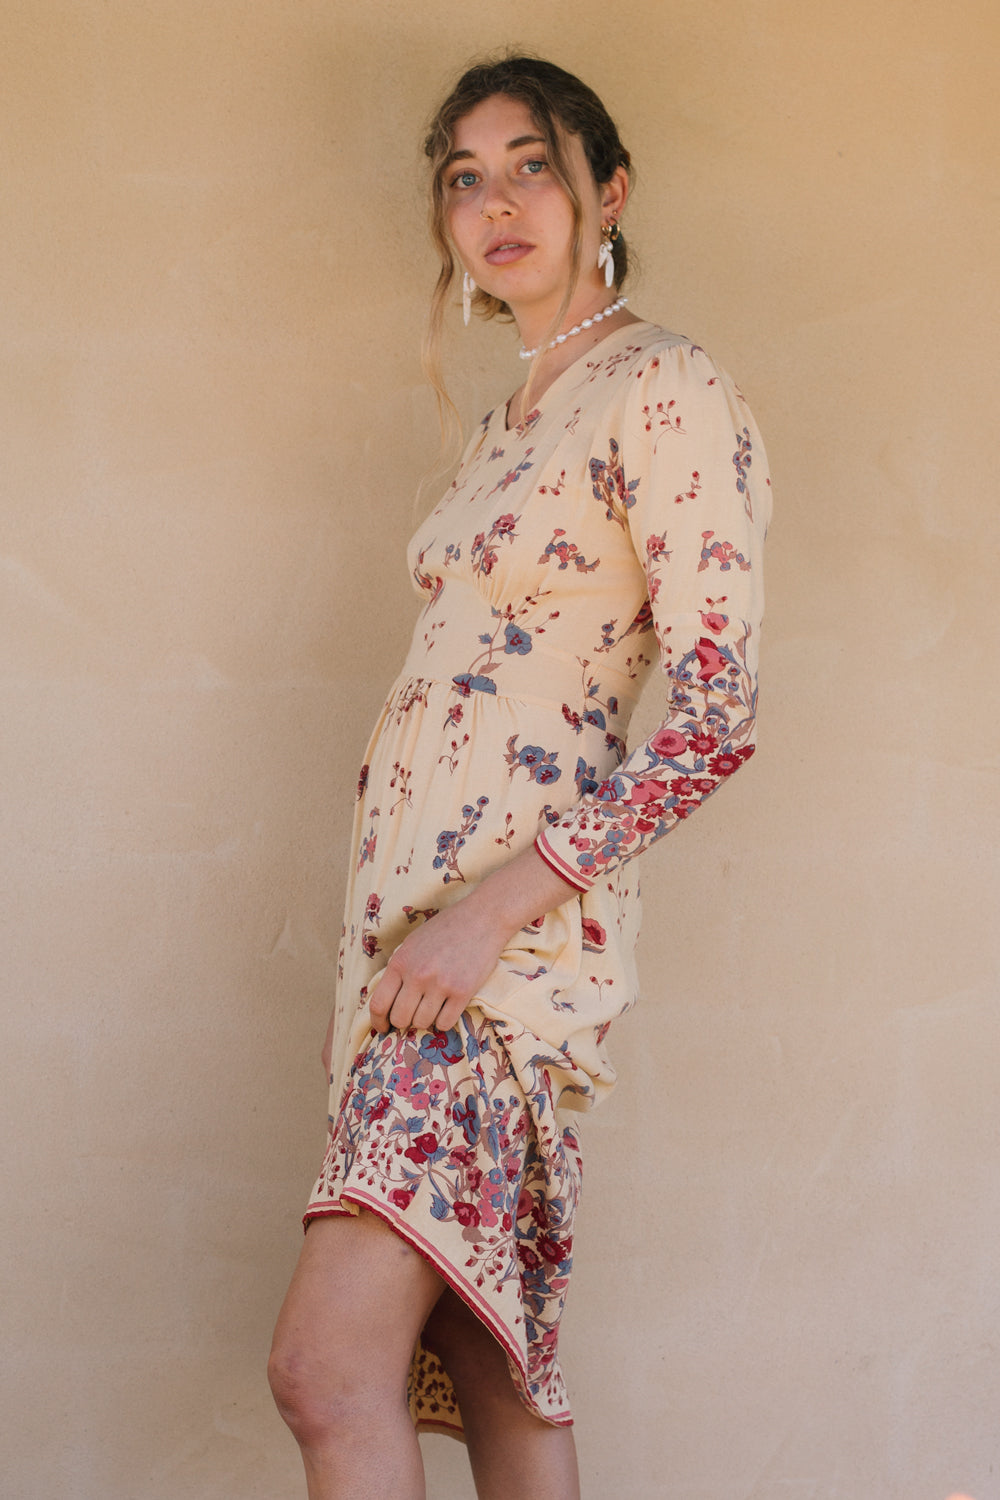 Dress - Seventies Butter Yellow Floral